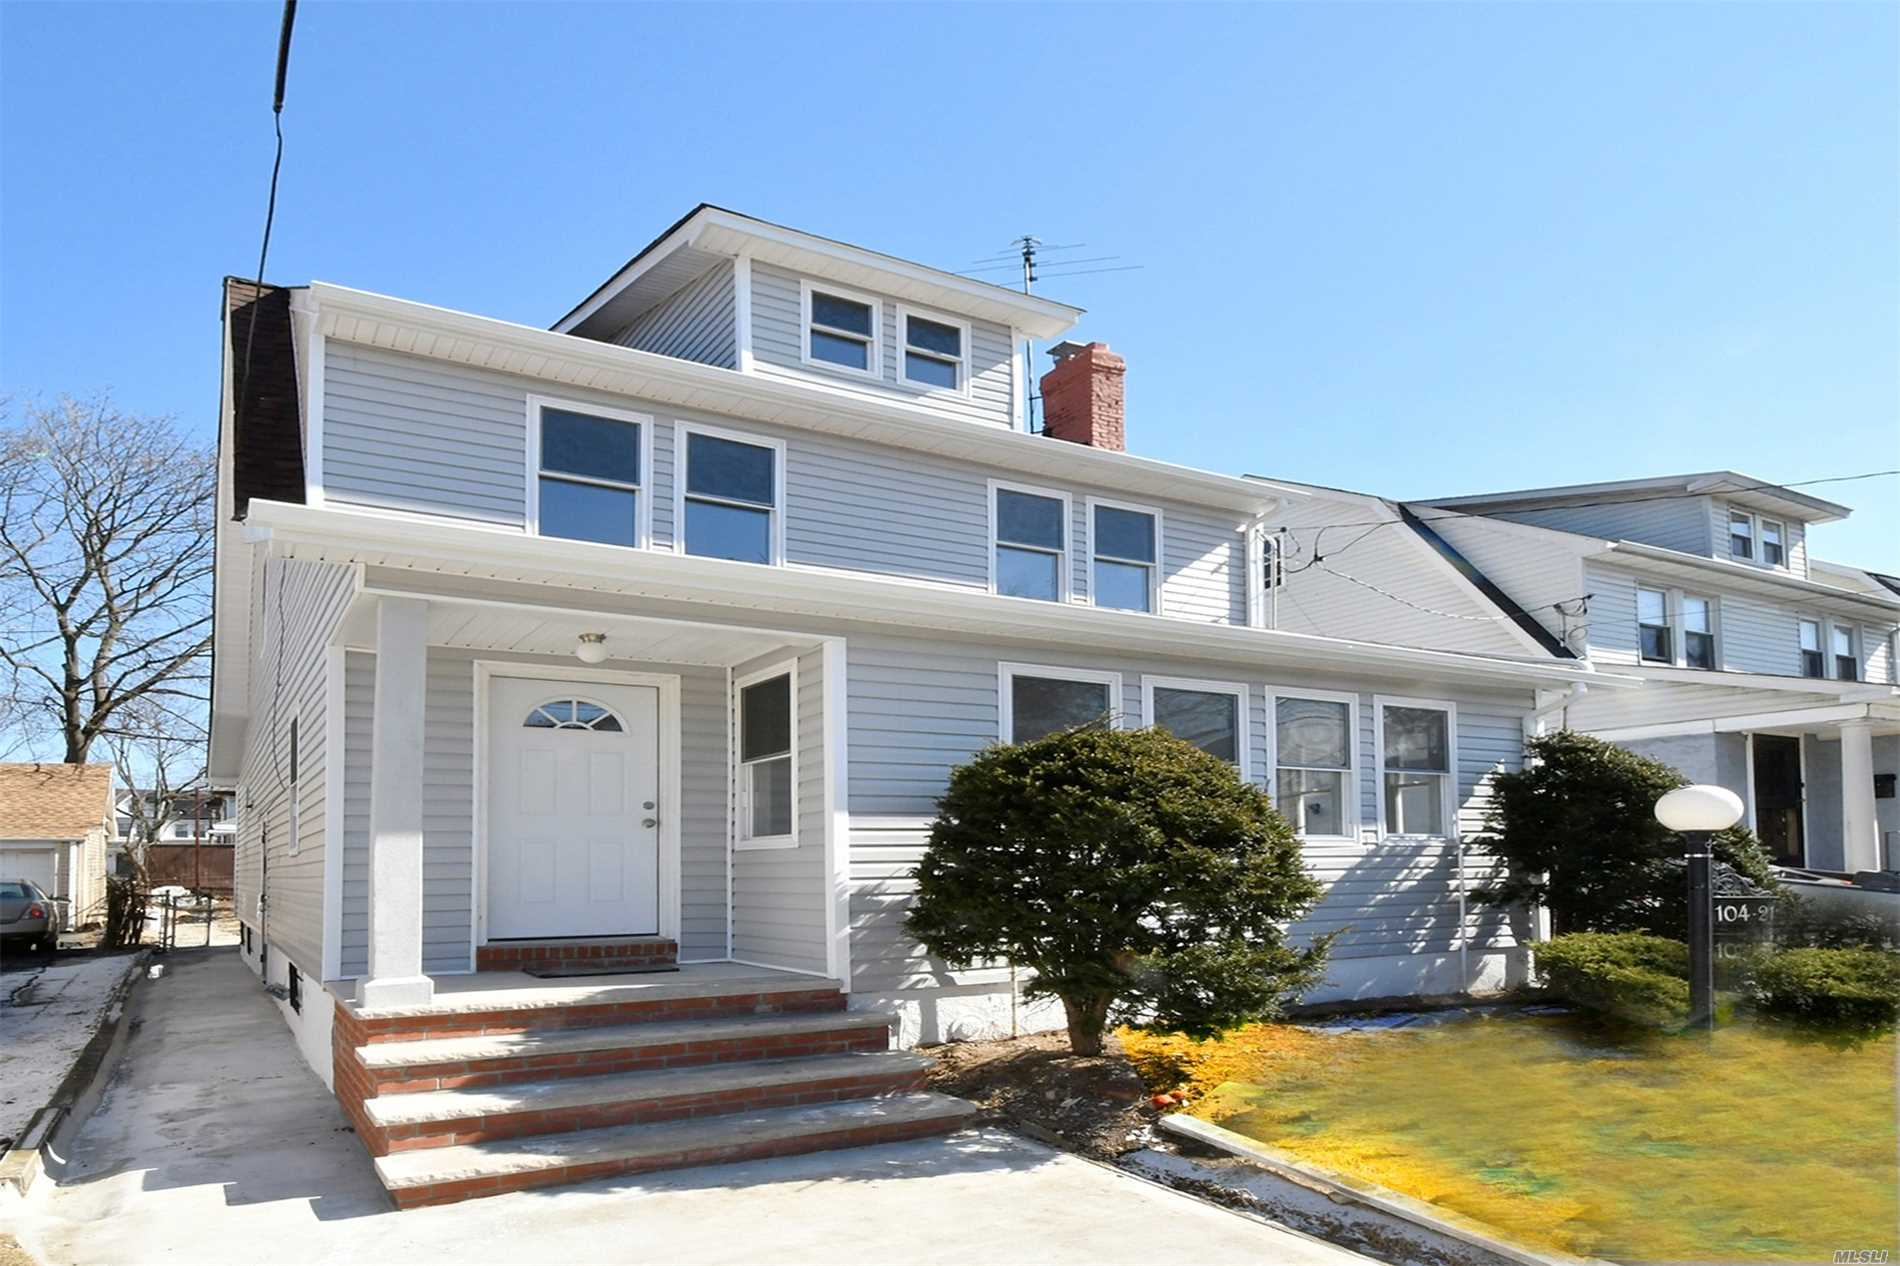 Setup As a 2 family 2, 000 Sq Ft Immaculate Brand New Single Family Colonial Very High Rental Income Property. Totally Renovated Hardwood Floors Throughout The Home, New Driveway, Renovated Kitchen, New Appliances, New Washer And Dryer Brand New Granite Counter Top, New Cabinets, All New Windows, New Siding, New Roof, New Hot Water Heater, Spacious Bedrooms Throughout The Home. Separate Entrance For The First Fl, 2nd Fl And Basement. Amazing Home Nice Spacious Backyard With A Detached New Garage.